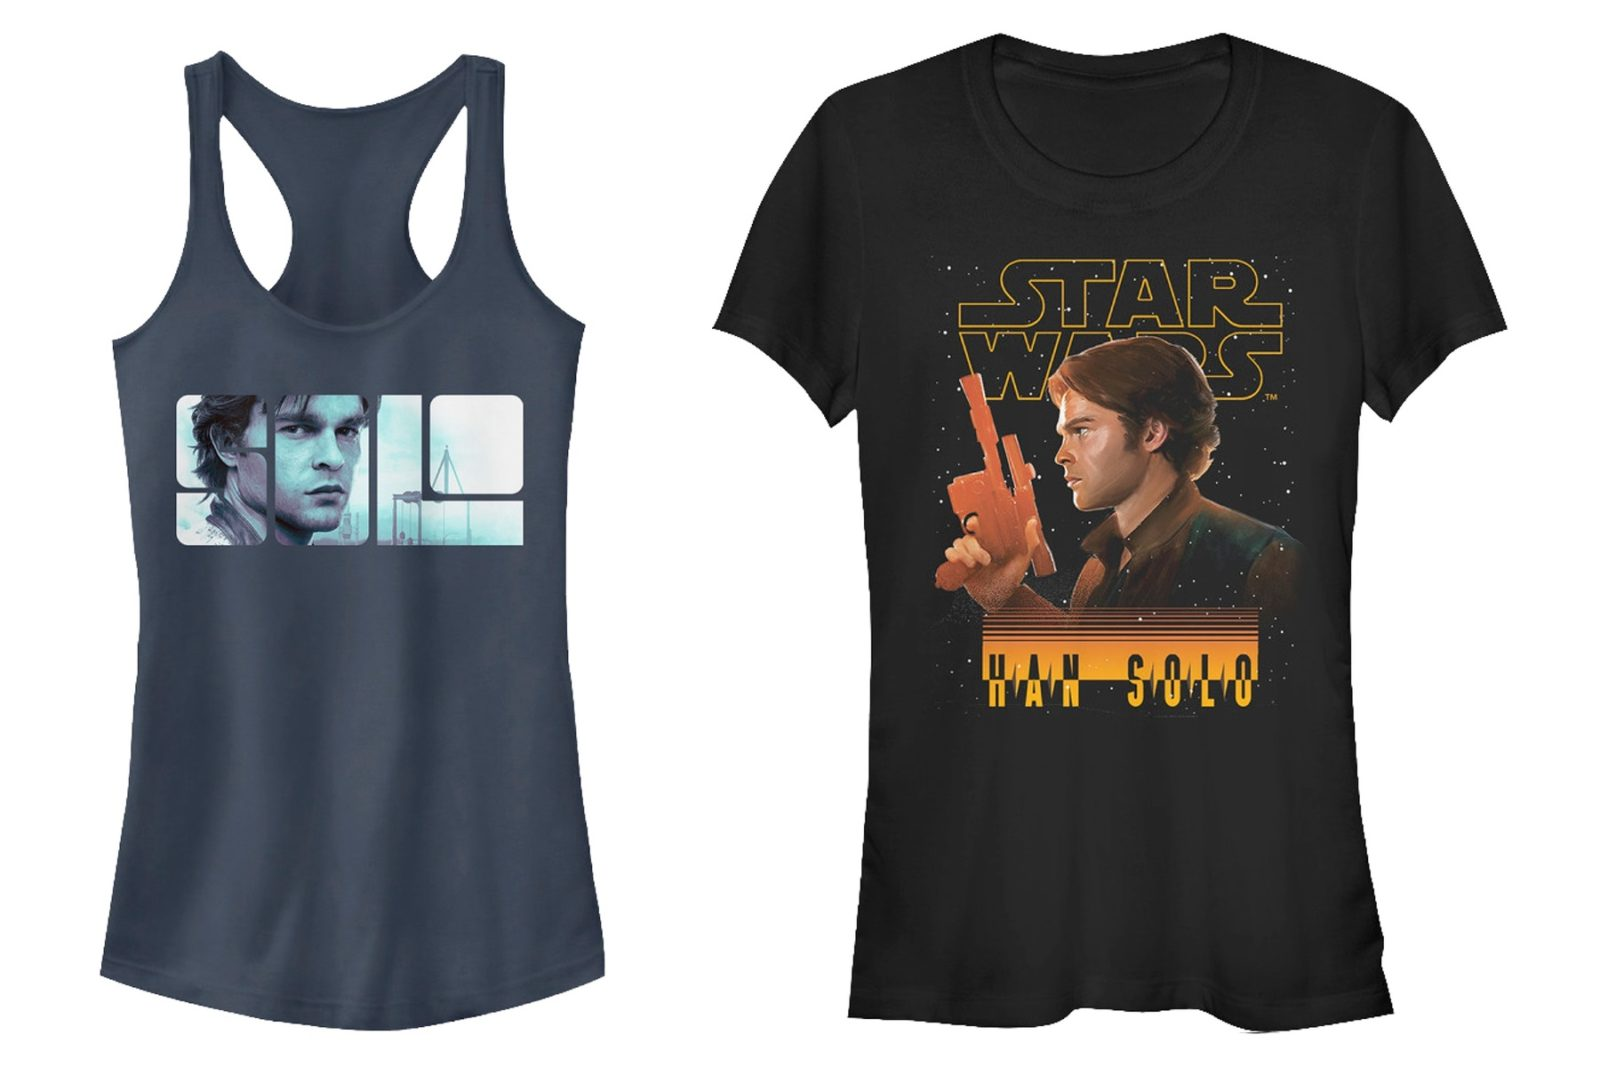 Women's Star Wars Solo Tops at 80's Tees